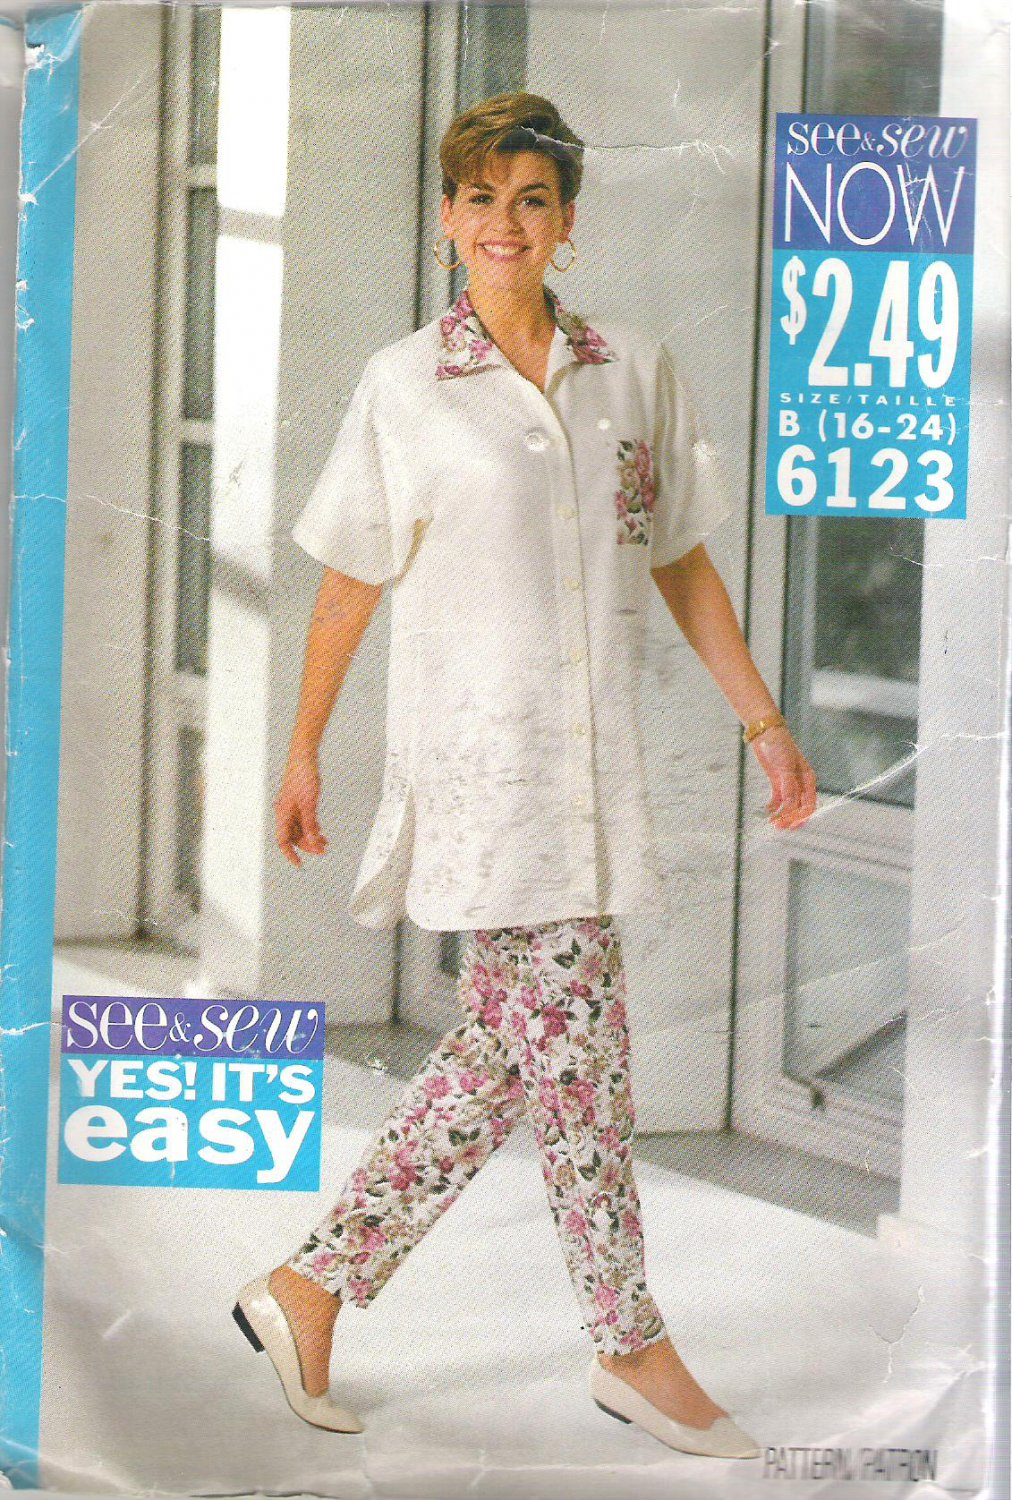 Butterick 6123 (1992) Pattern Long Shirt Top Tapered Pants Size 16-24 CUT